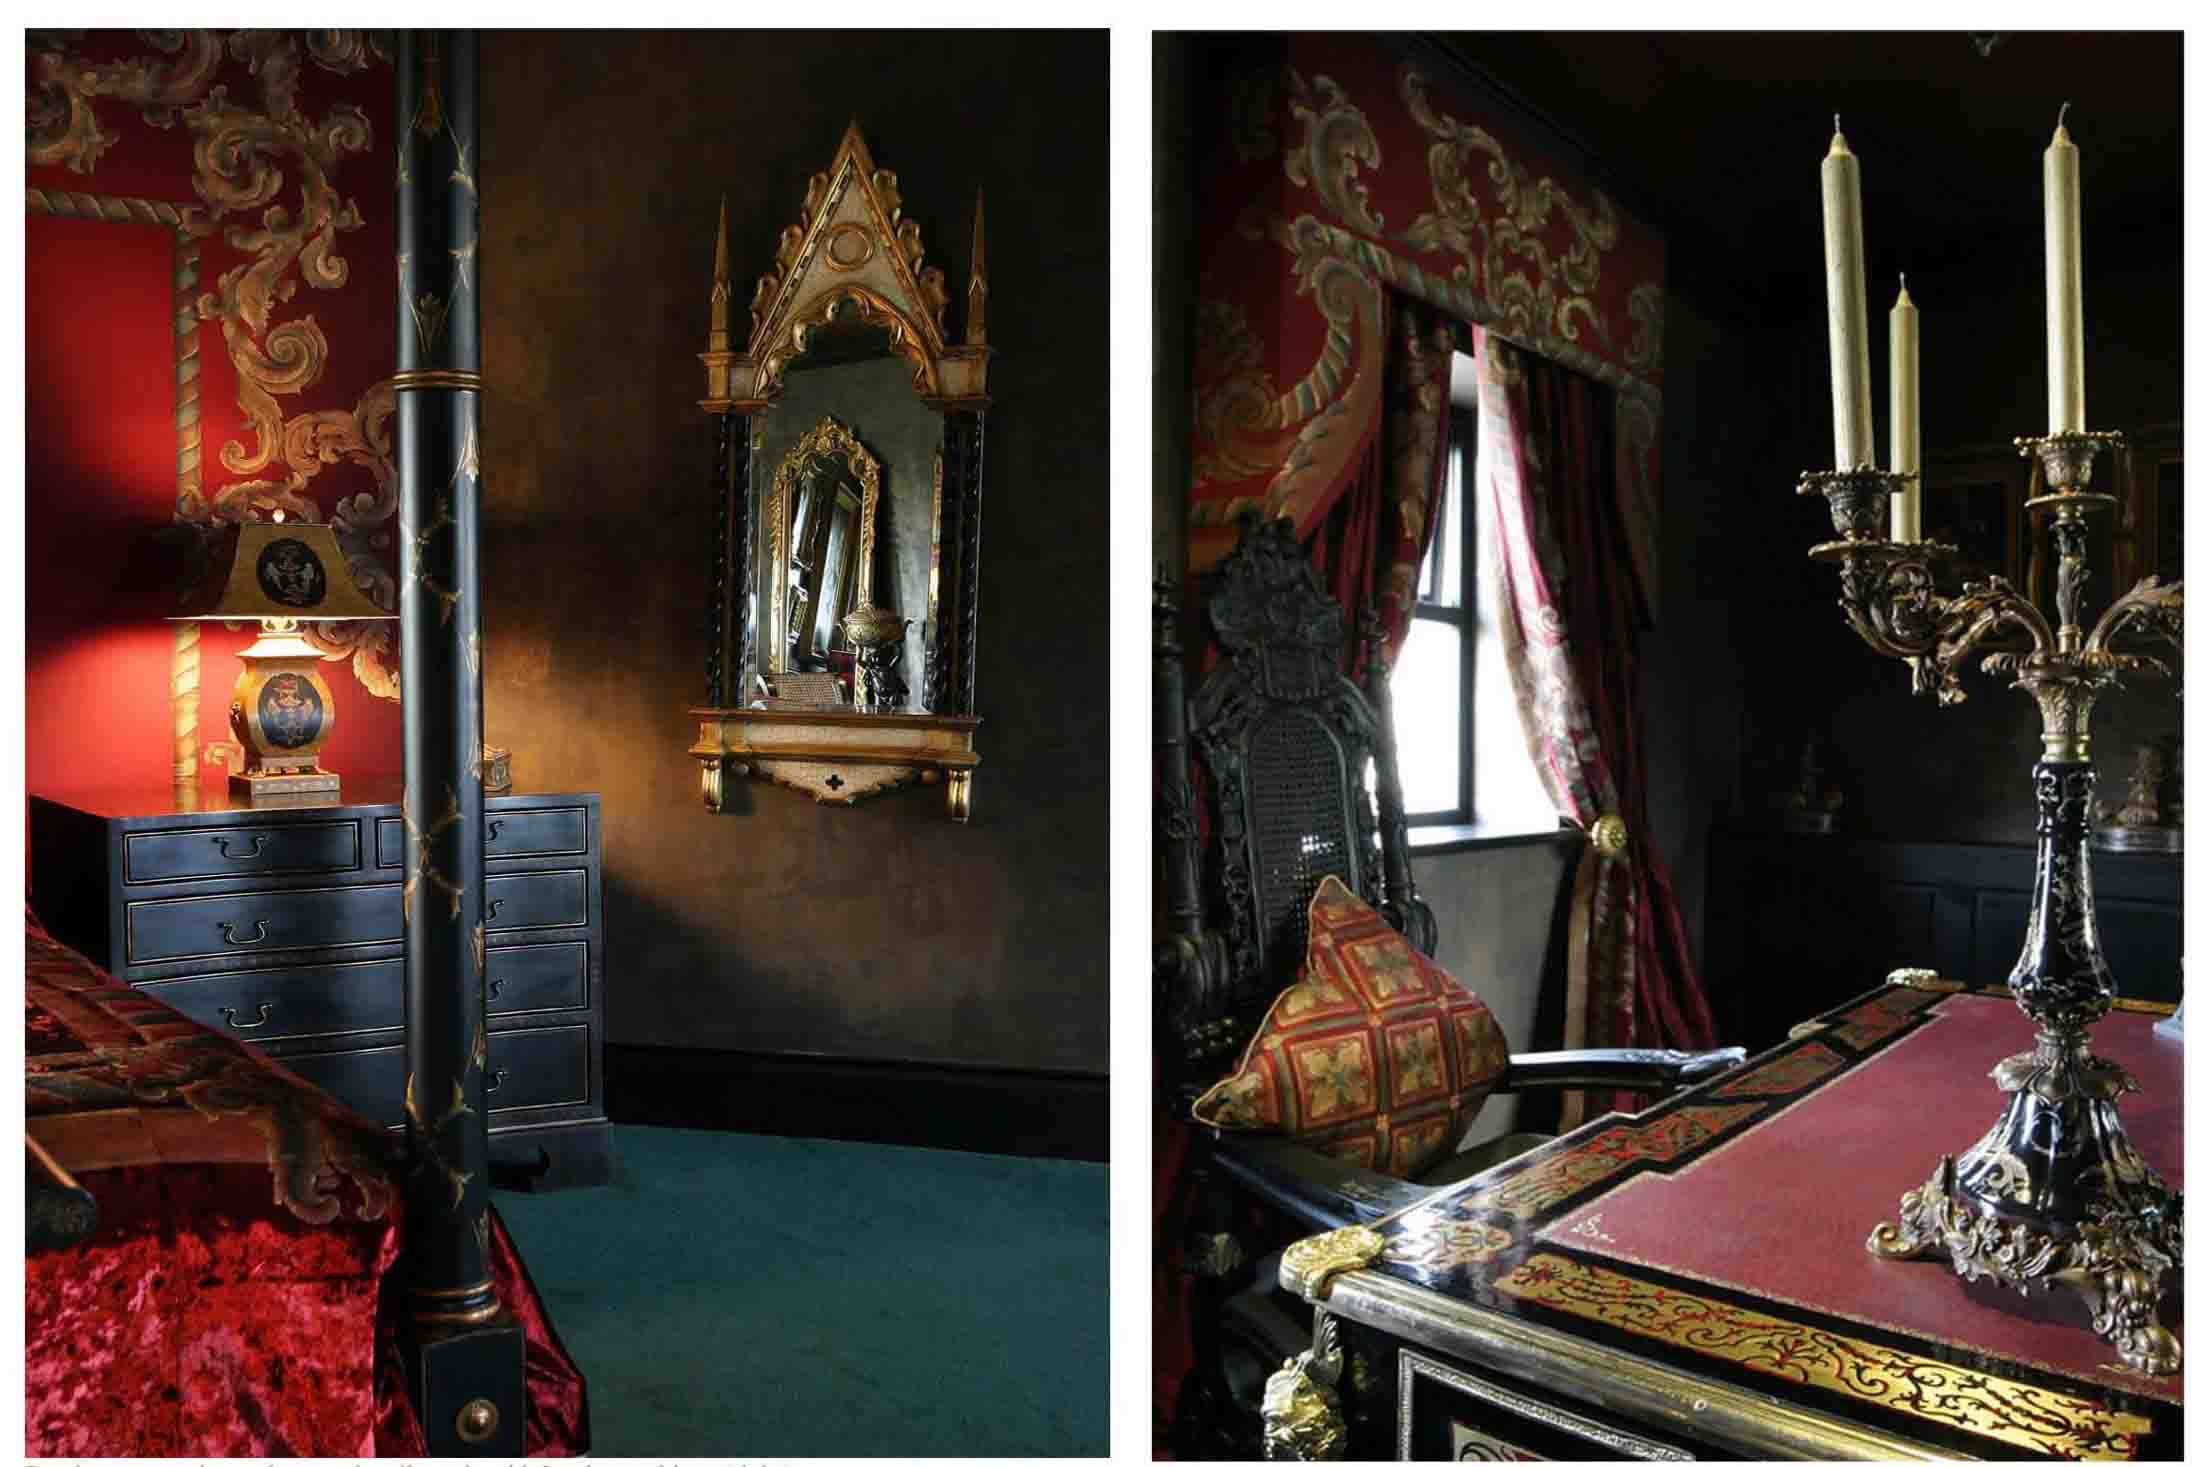 Bery Designs hand painted fabrics GOTHIC STYLE BEDROOM